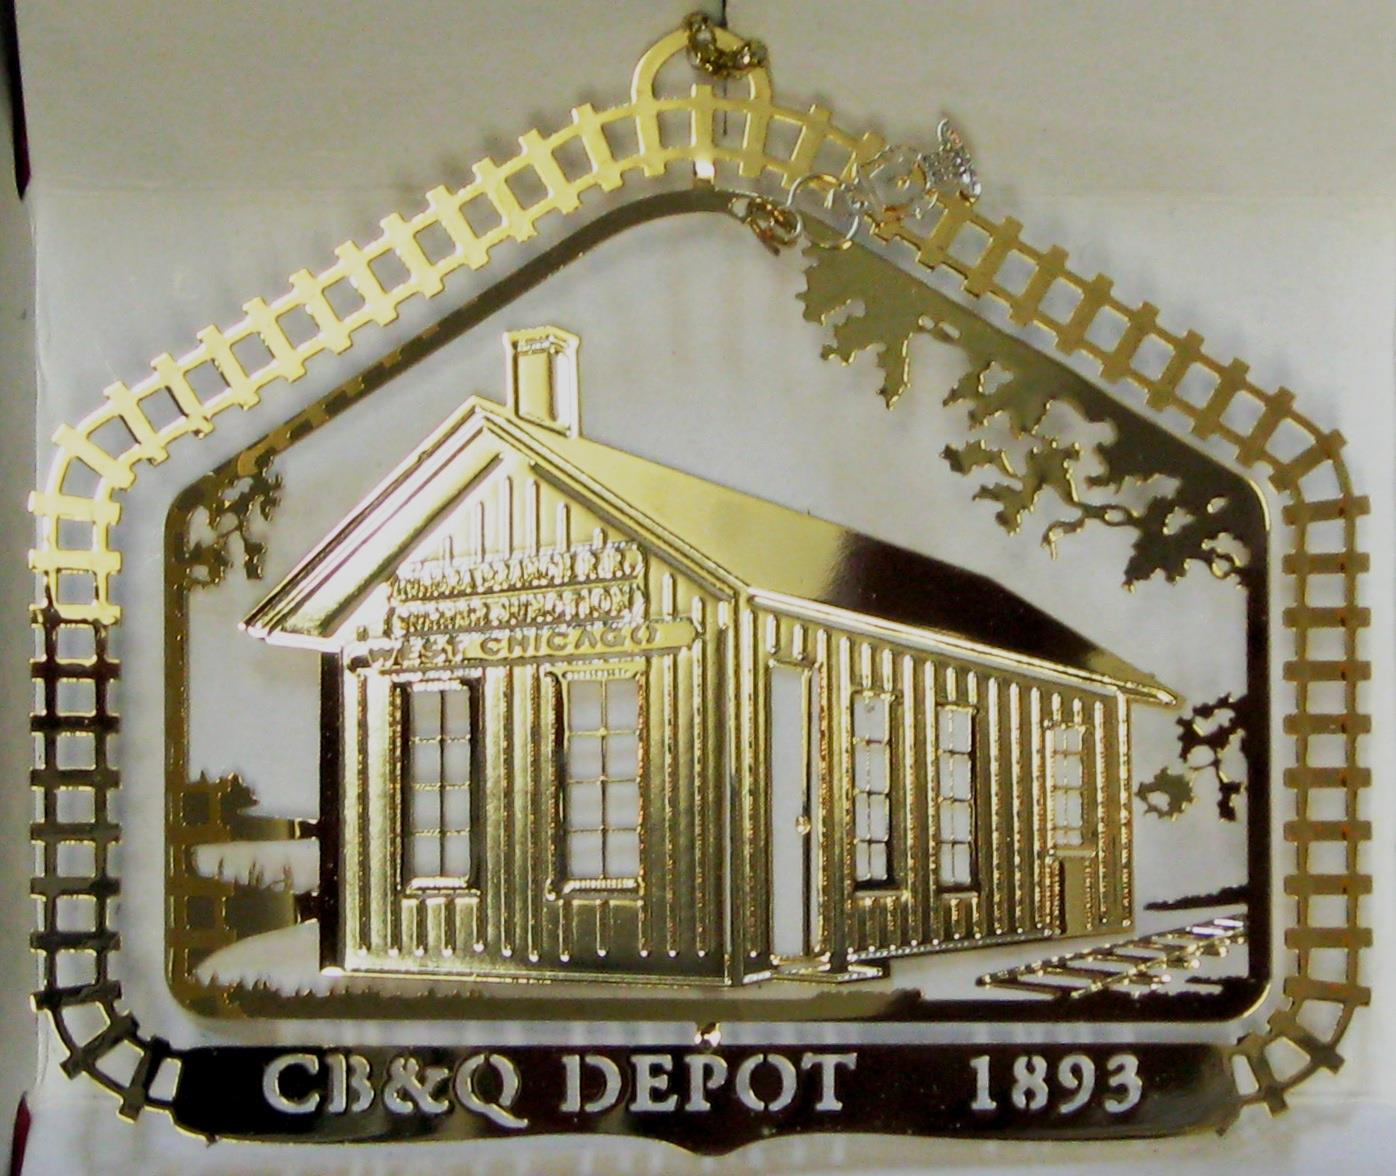 2001- CB&Q Depot ( Out of Stock)    This Chicago, ,Burlington & Quincy Railroad depot was built c. 1893. It replaced the originaldepot that dated back to 1850 when the Burlington built its very first track from junction (now West Chicago) to Aurora. Today's BurlingtonNorthern Sante Fe, our country's largest railroad, began here. The depot was donated to the City by the Burlington in 1976. It has been moved from its original site on Wood Street and is now part of a railroad park.